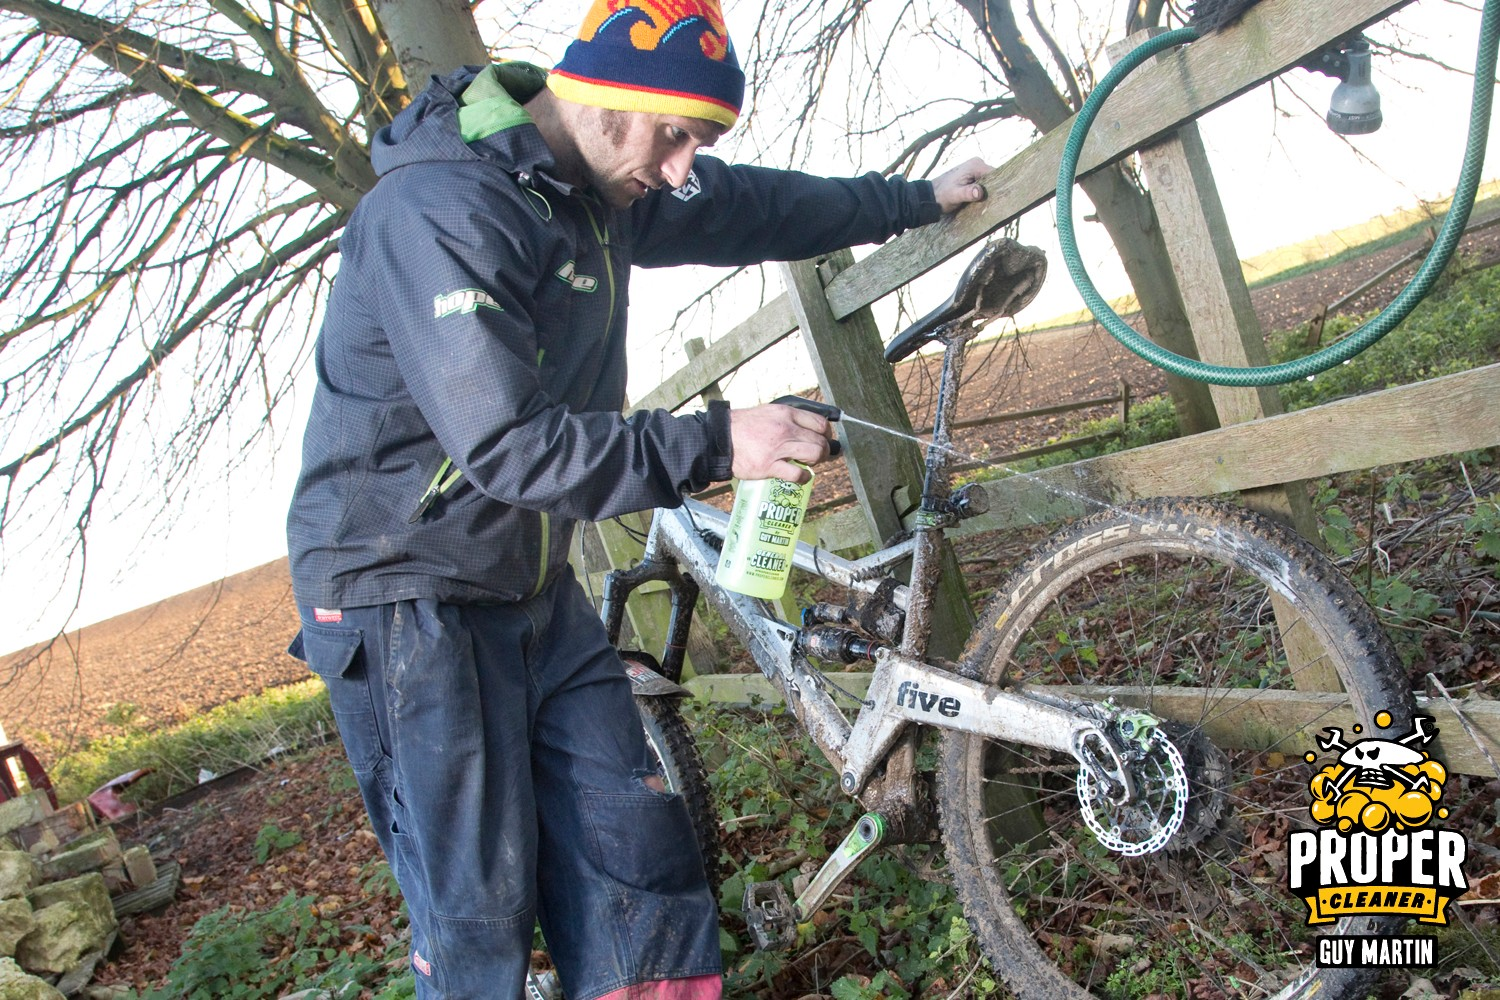 Guy Martin cleans his mountain bike with Proper Cleaner